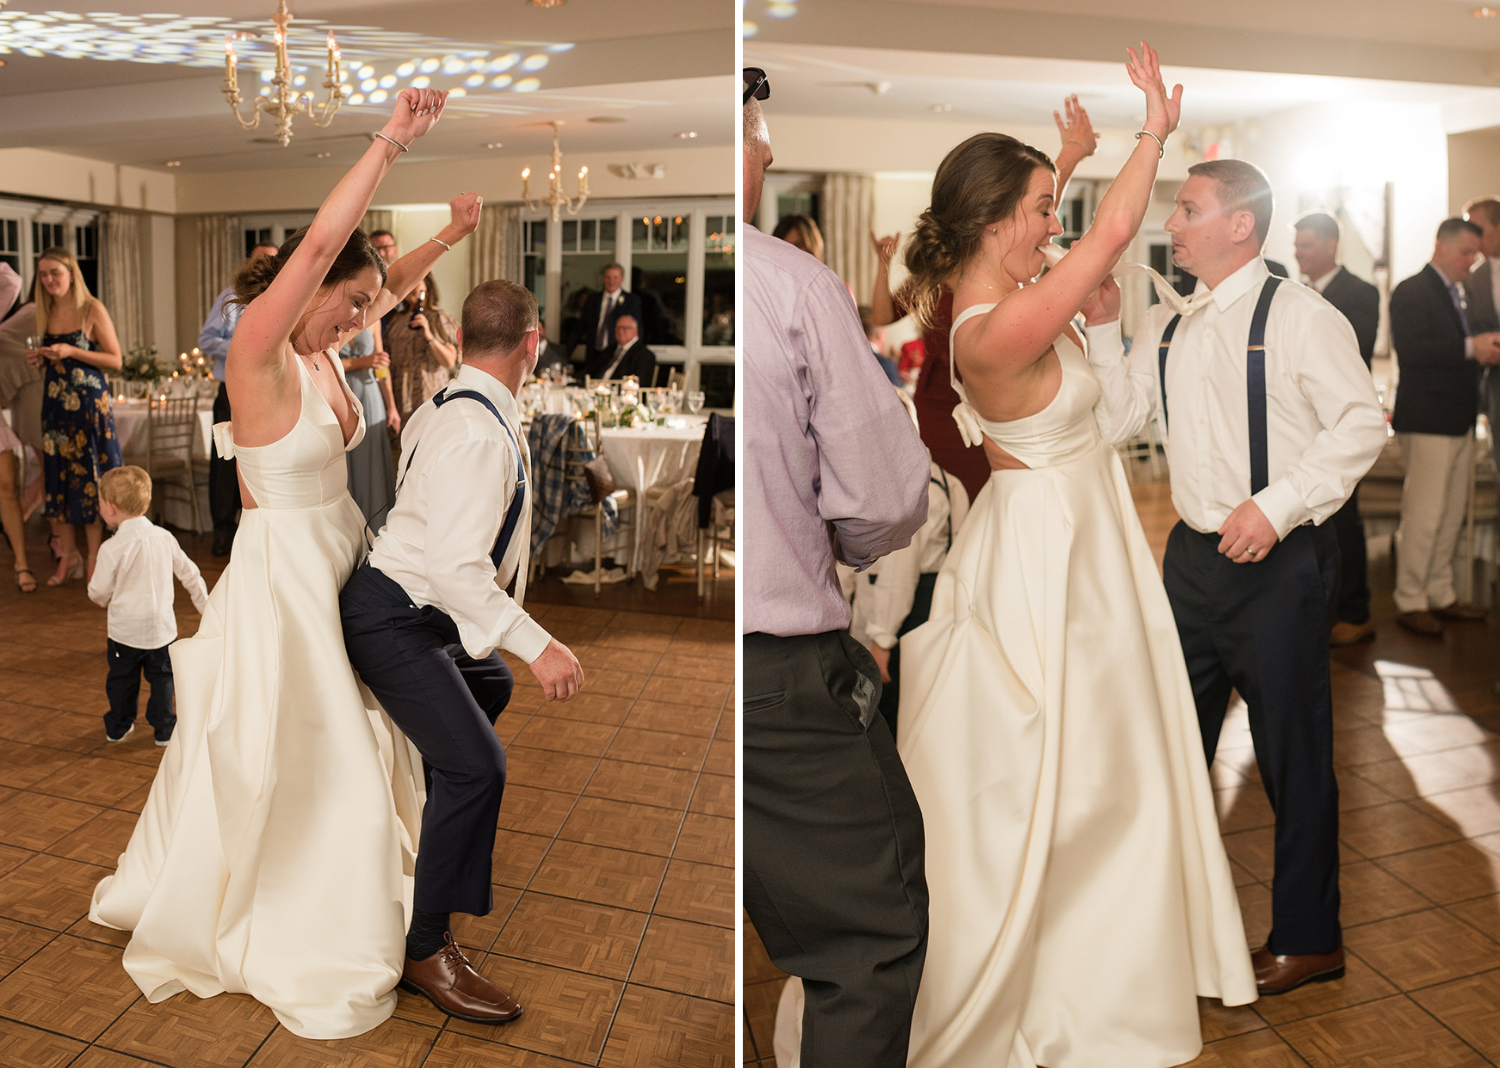 bride and groom dancing with their wedding guest during their wedding reception